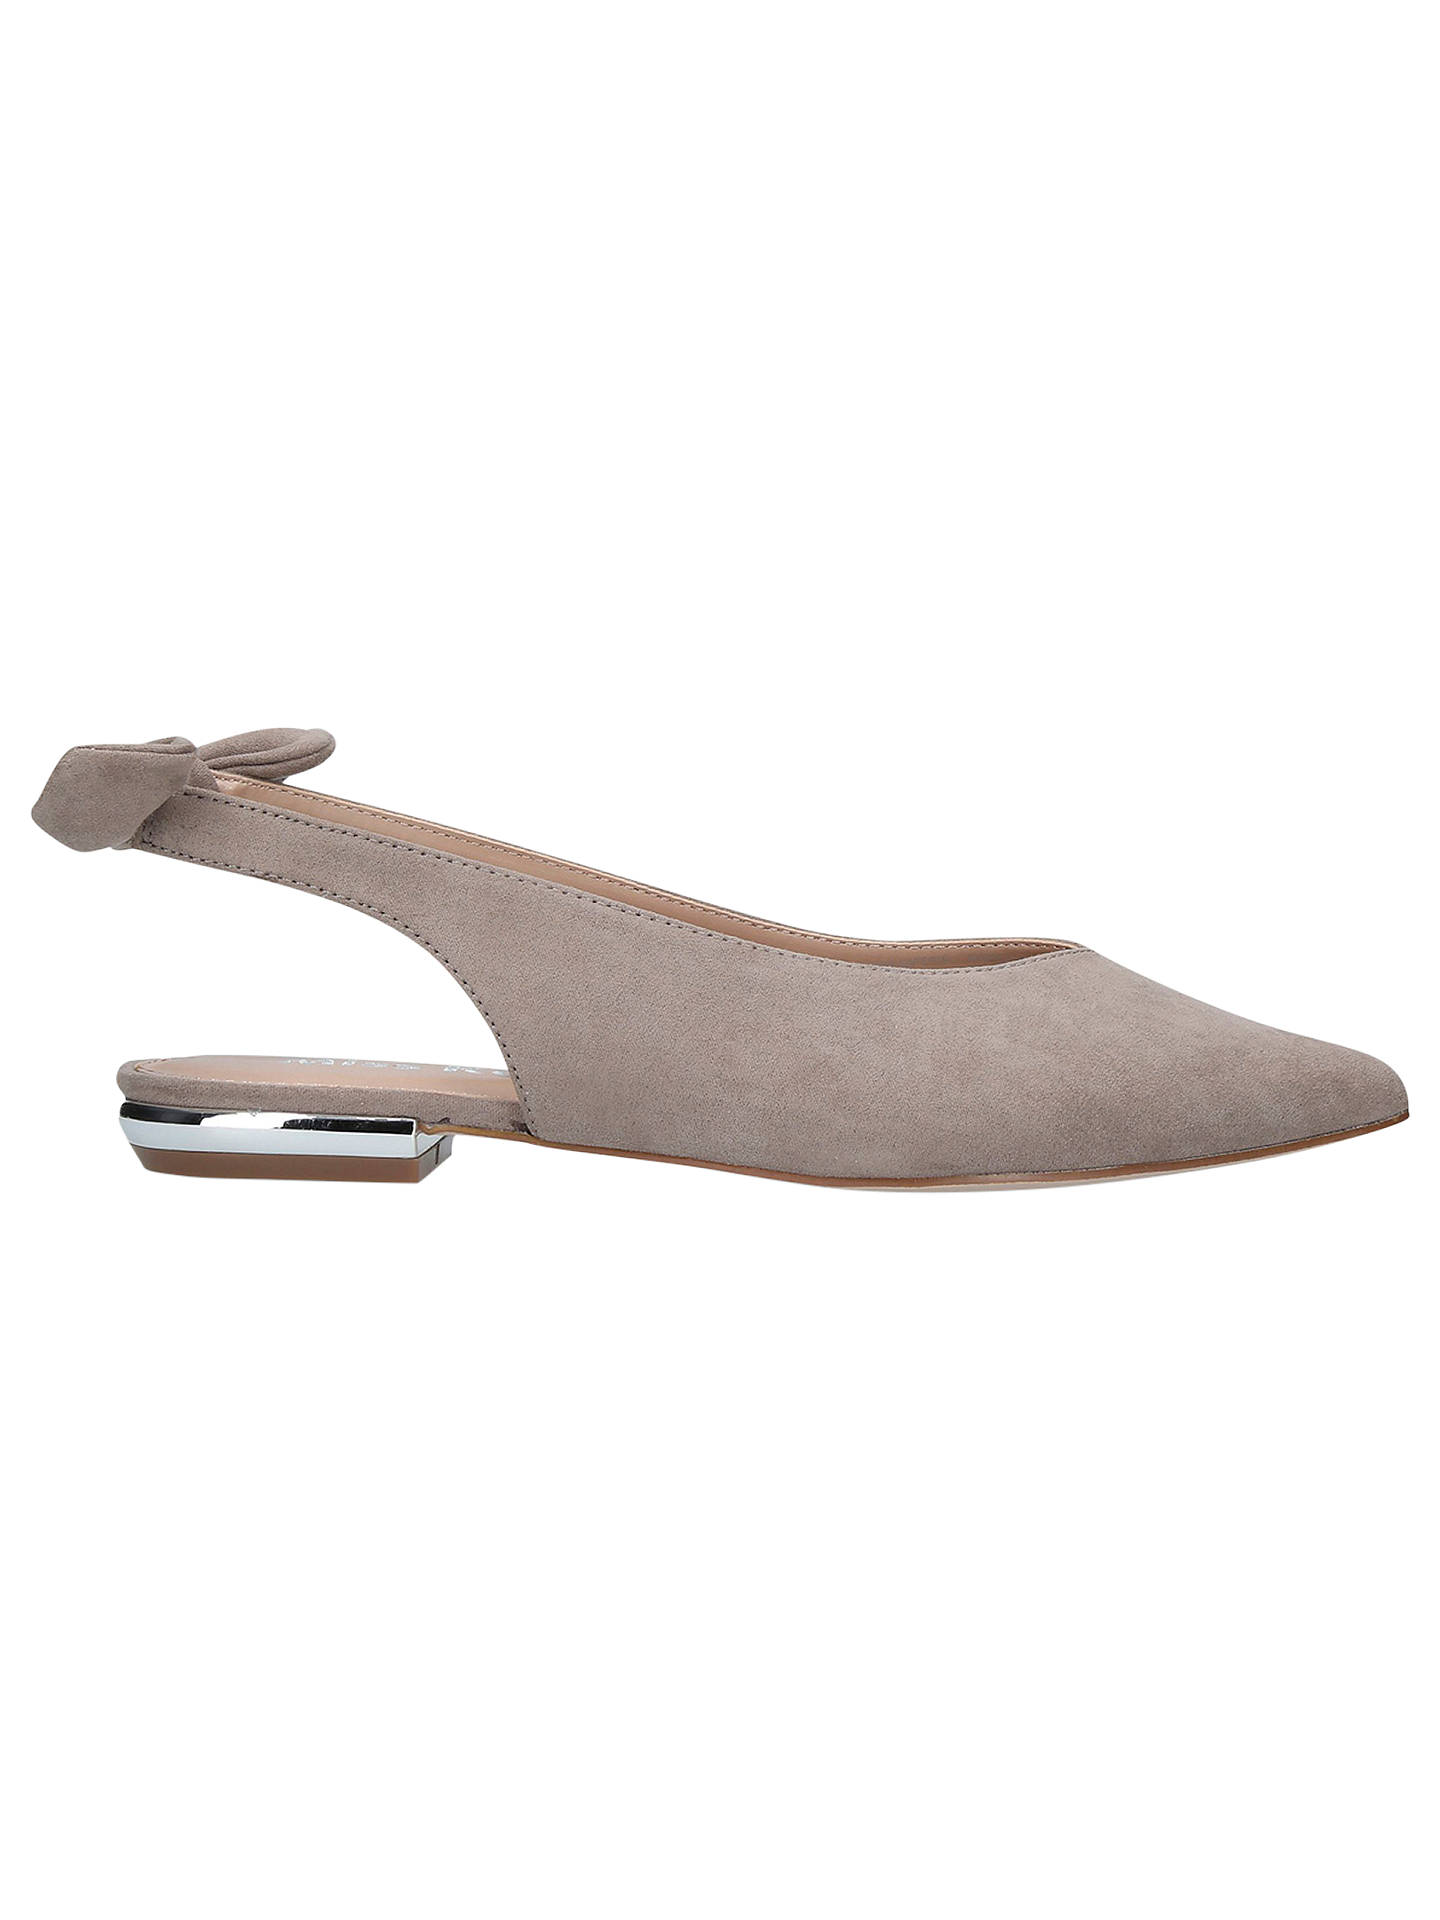 BuyMiss KG Maddie Slingback Pumps, Grey, 3 Online at johnlewis.com